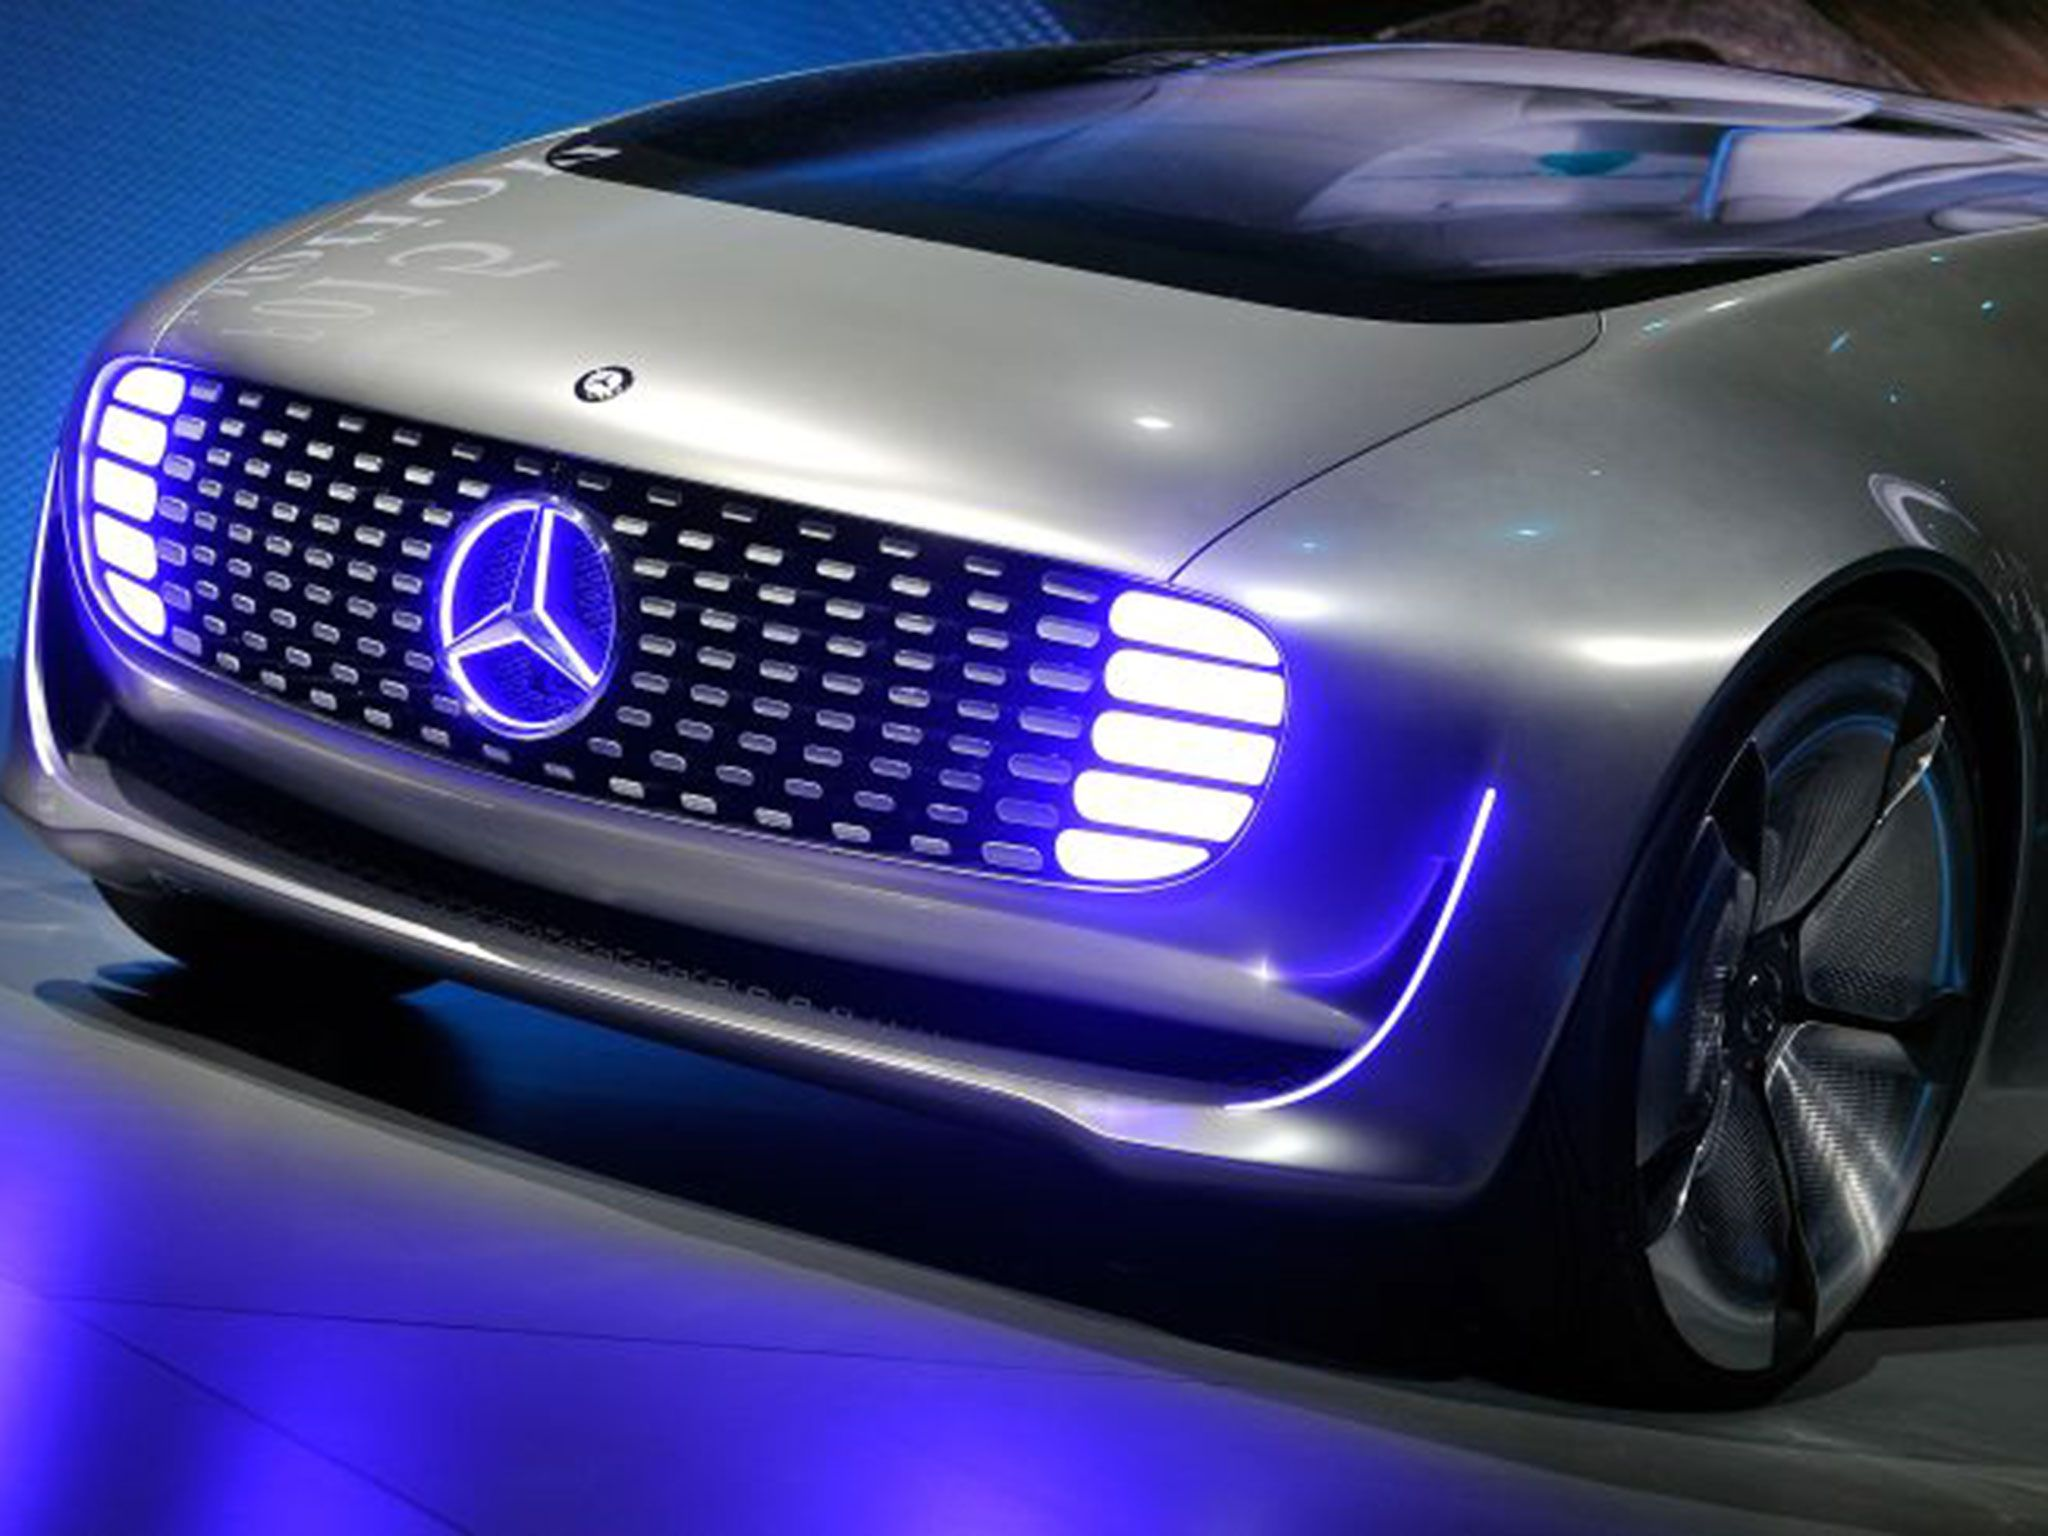 Swivel chairs and 685 miles per charge, take a look at Mercedes ...